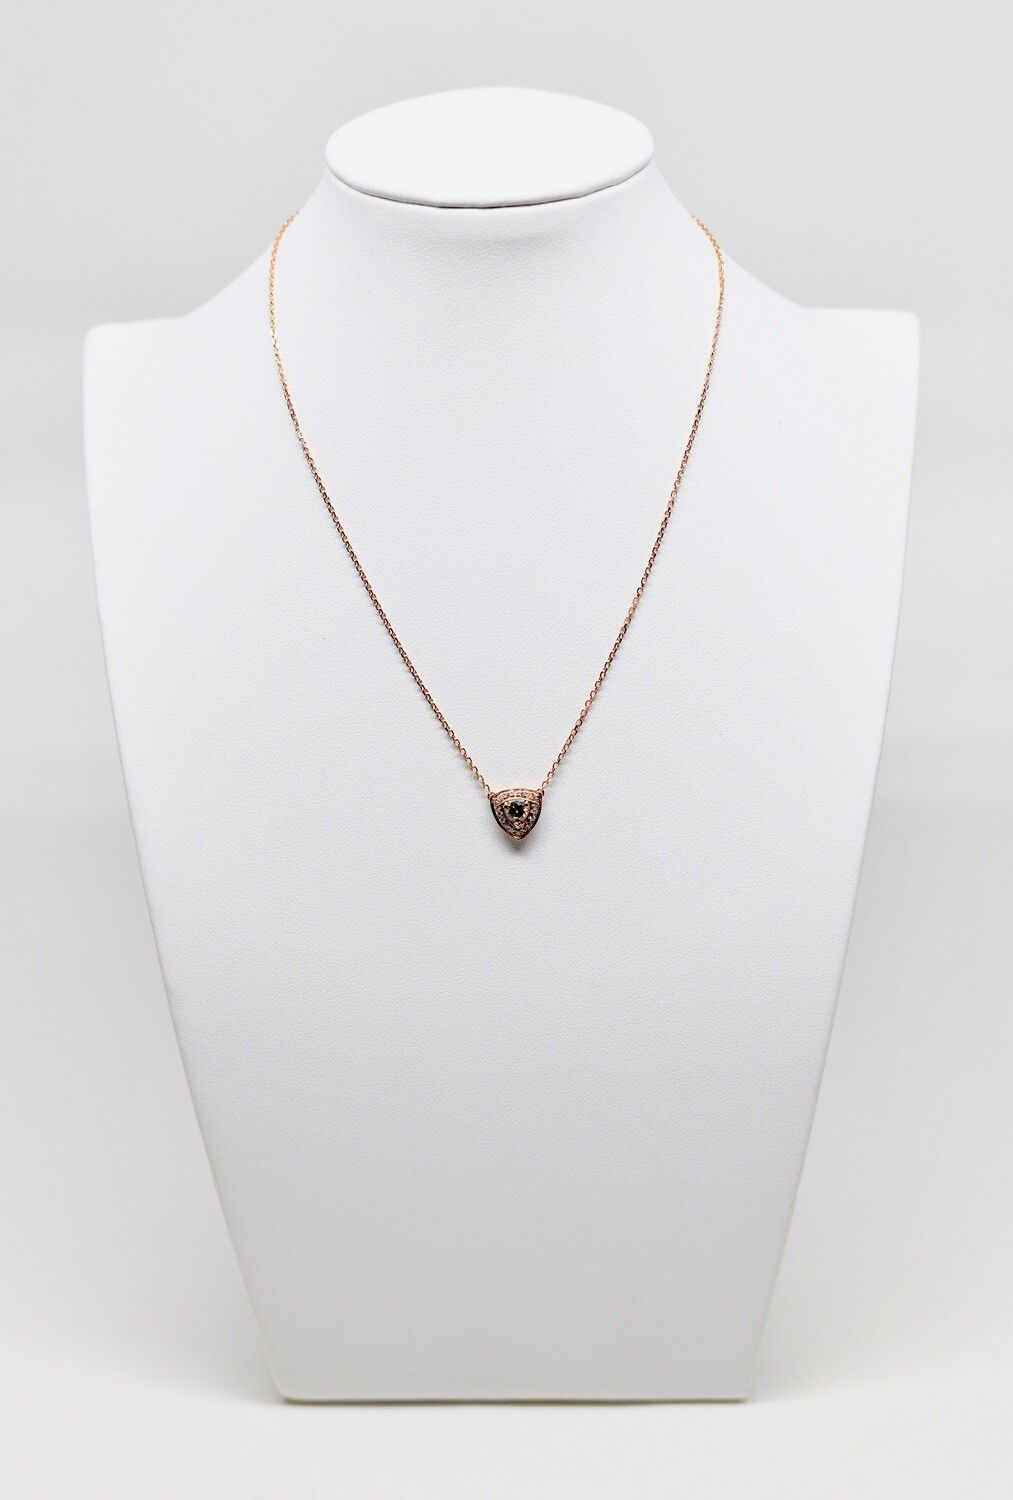 Collier en or rose 18k, longueur 45 cm